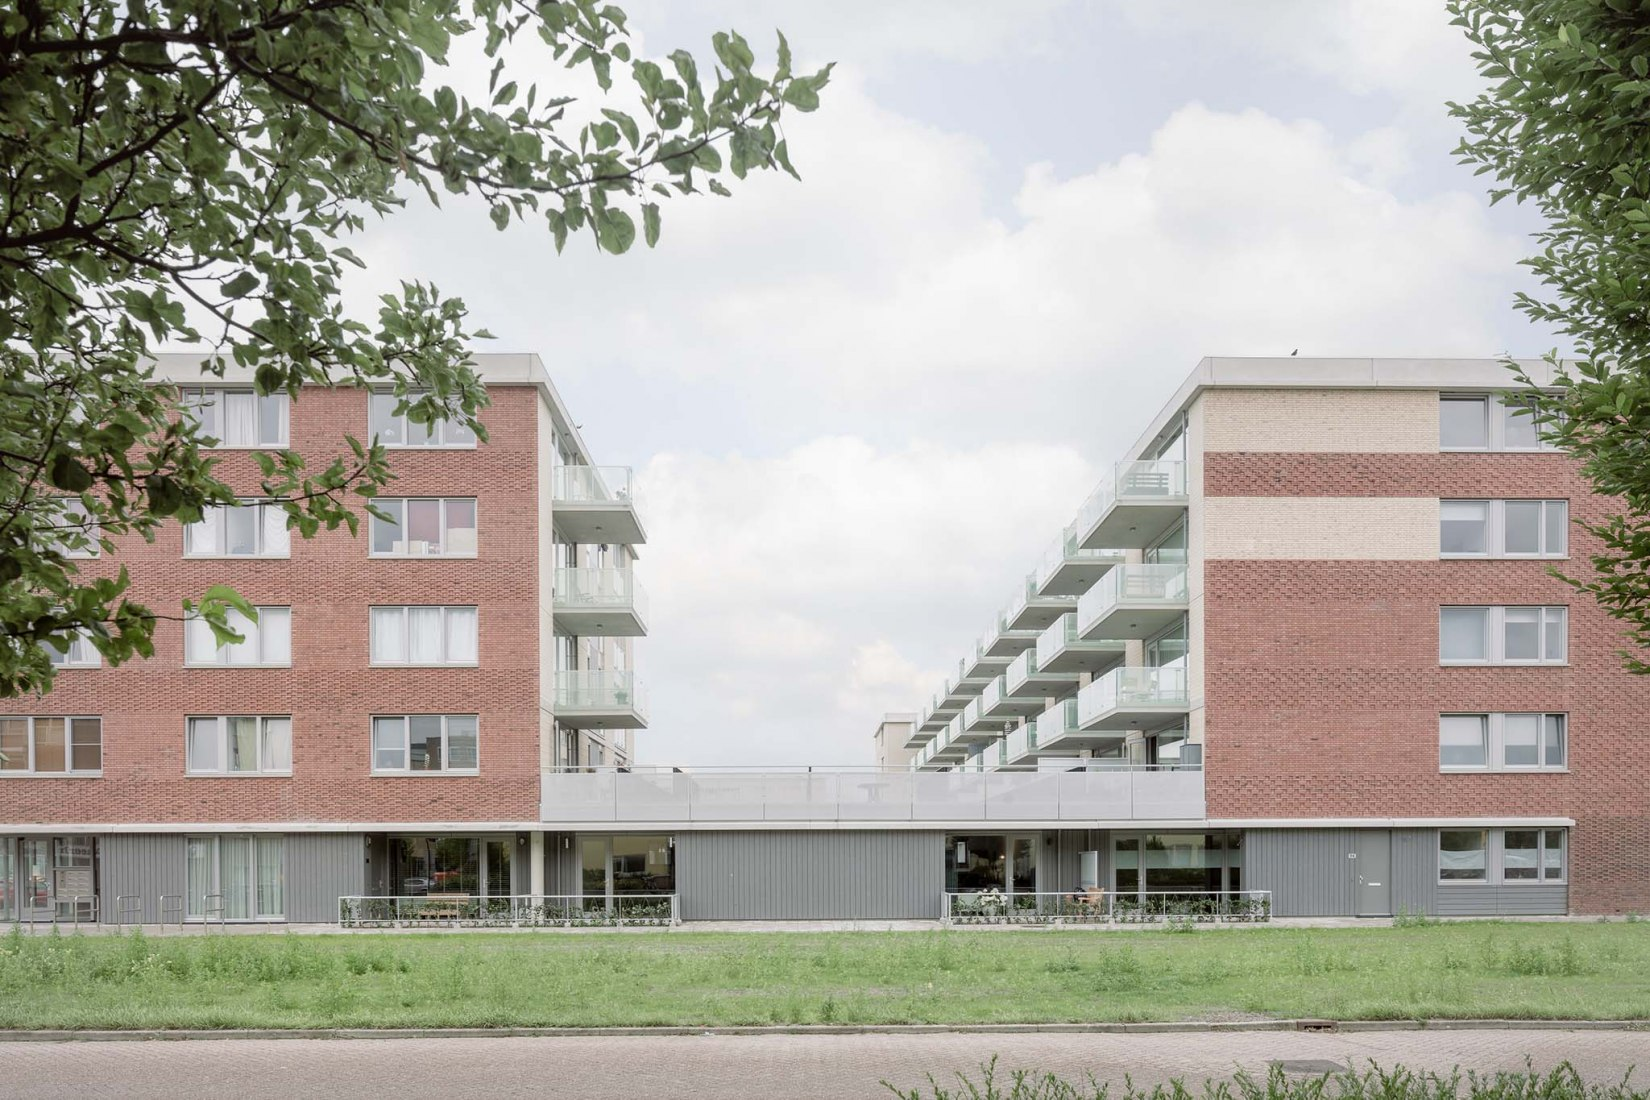 Housing complex in Heerhugowaard by Mateo Arquitectura. Photograph by Aldo Amoretti